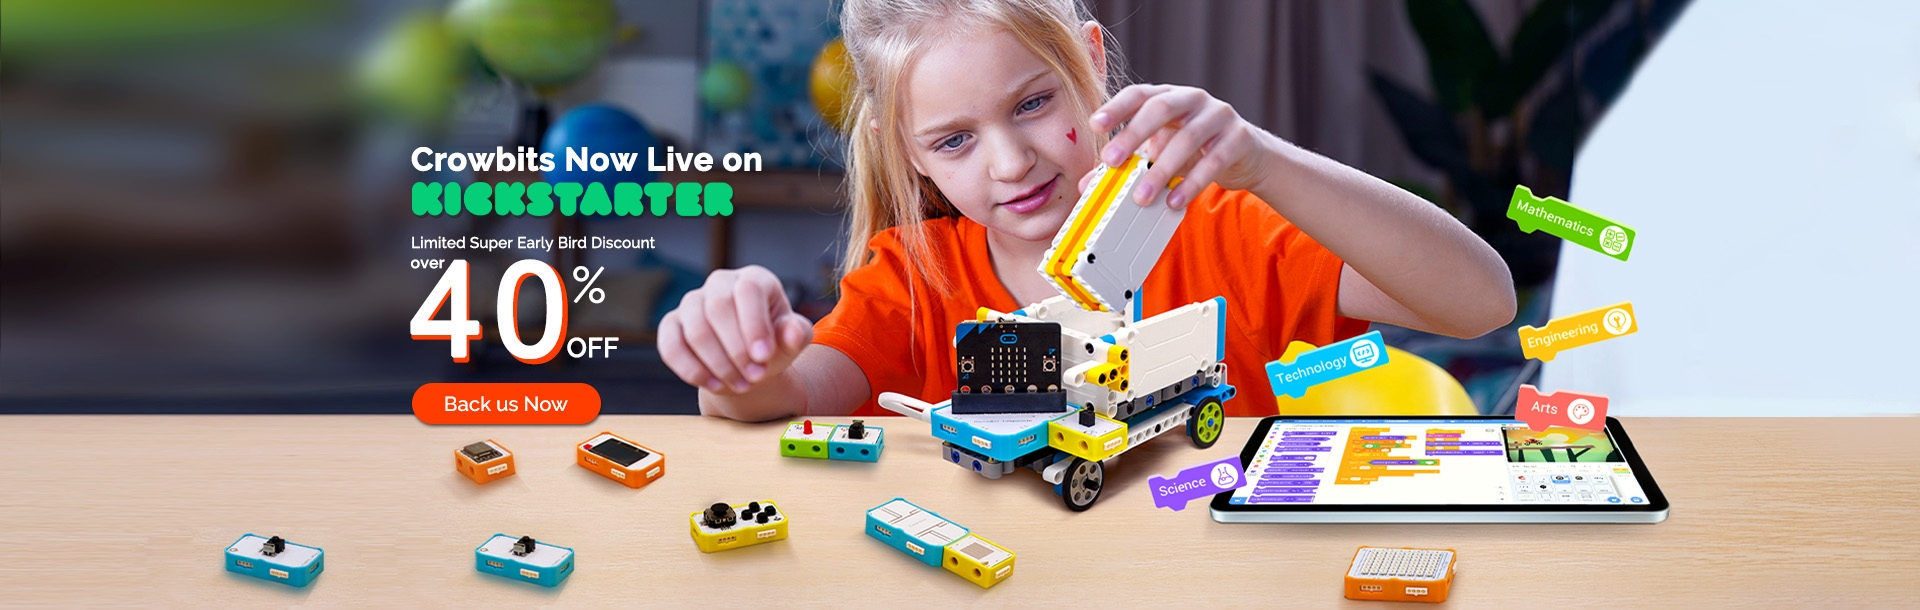 https://www.kickstarter.com/projects/elecrow/crowbits-electronic-blocks-for-stem-education-at-any-level